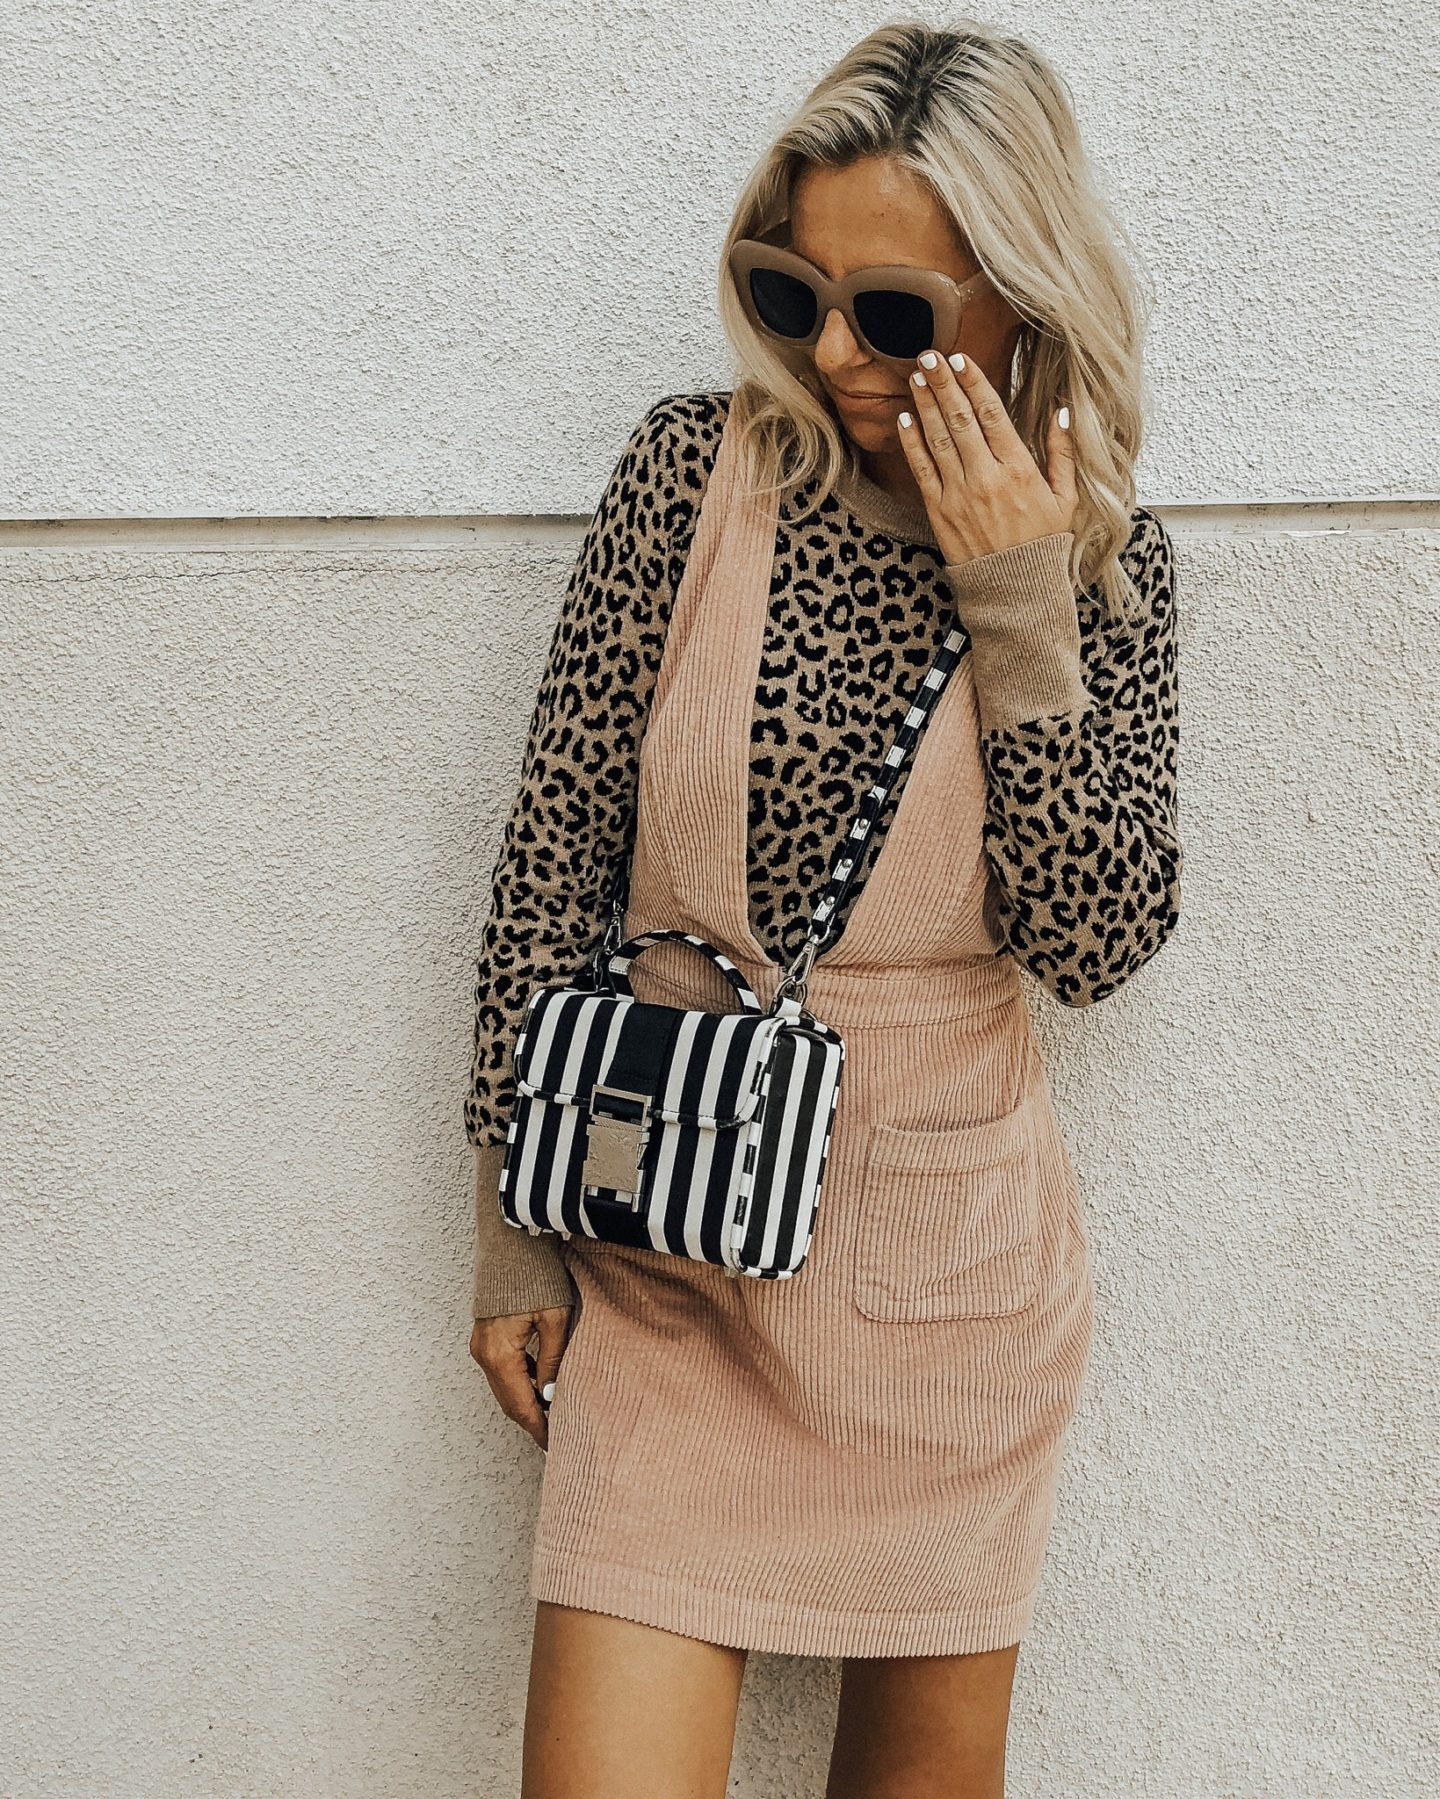 NOVEMBER TOP 10- Jaclyn De Leon Style- Leopard sweater + skirtall + striped handbag + sweater weather + fall fashion + retro sunglasses + what to wear this season + target style + casual style